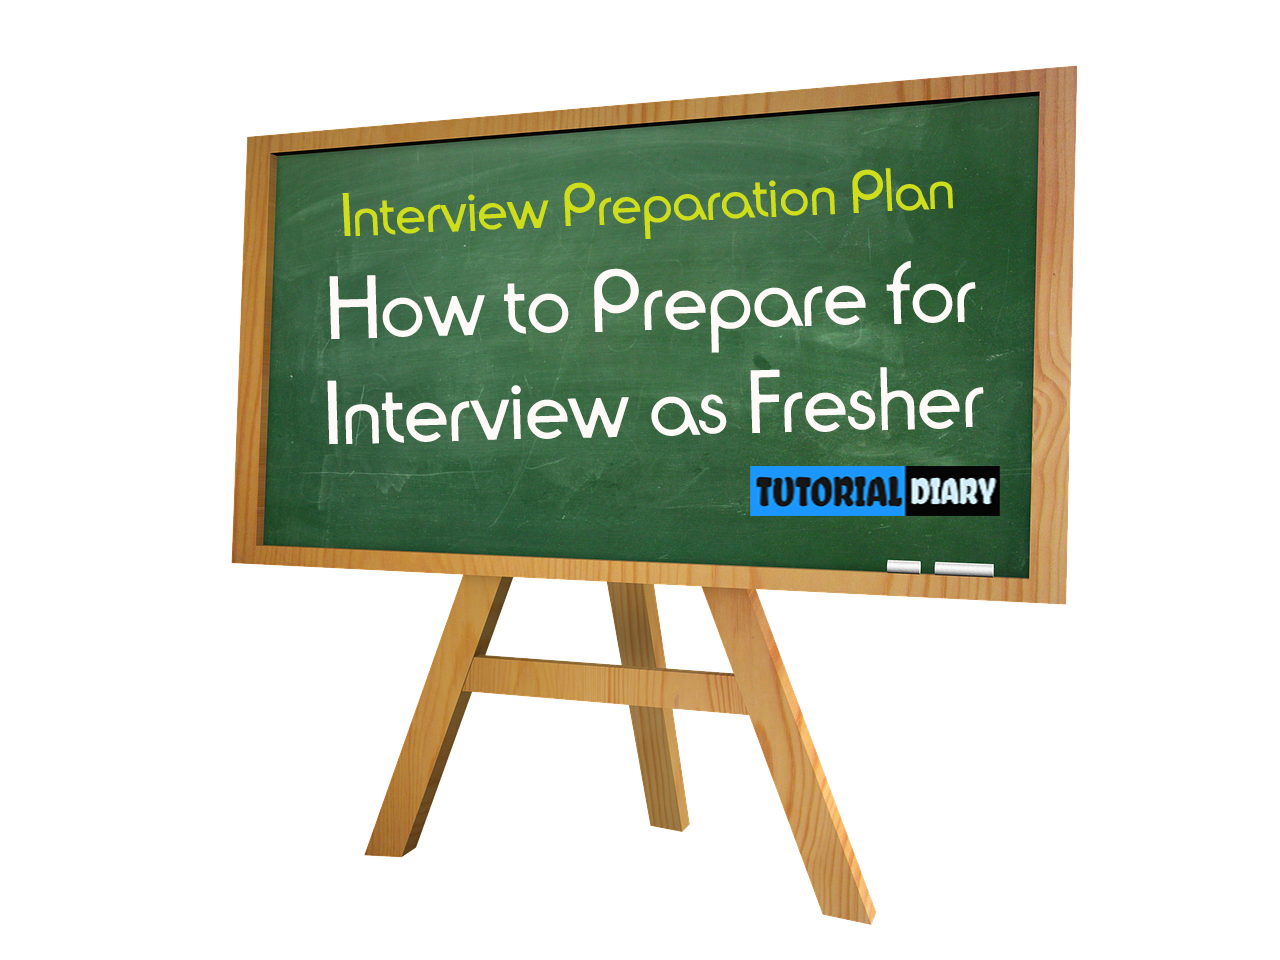 how to prepare for interview as fresher interview preparation how to prepare for interview as fresher interview preparation plan for fresher tutorial diary